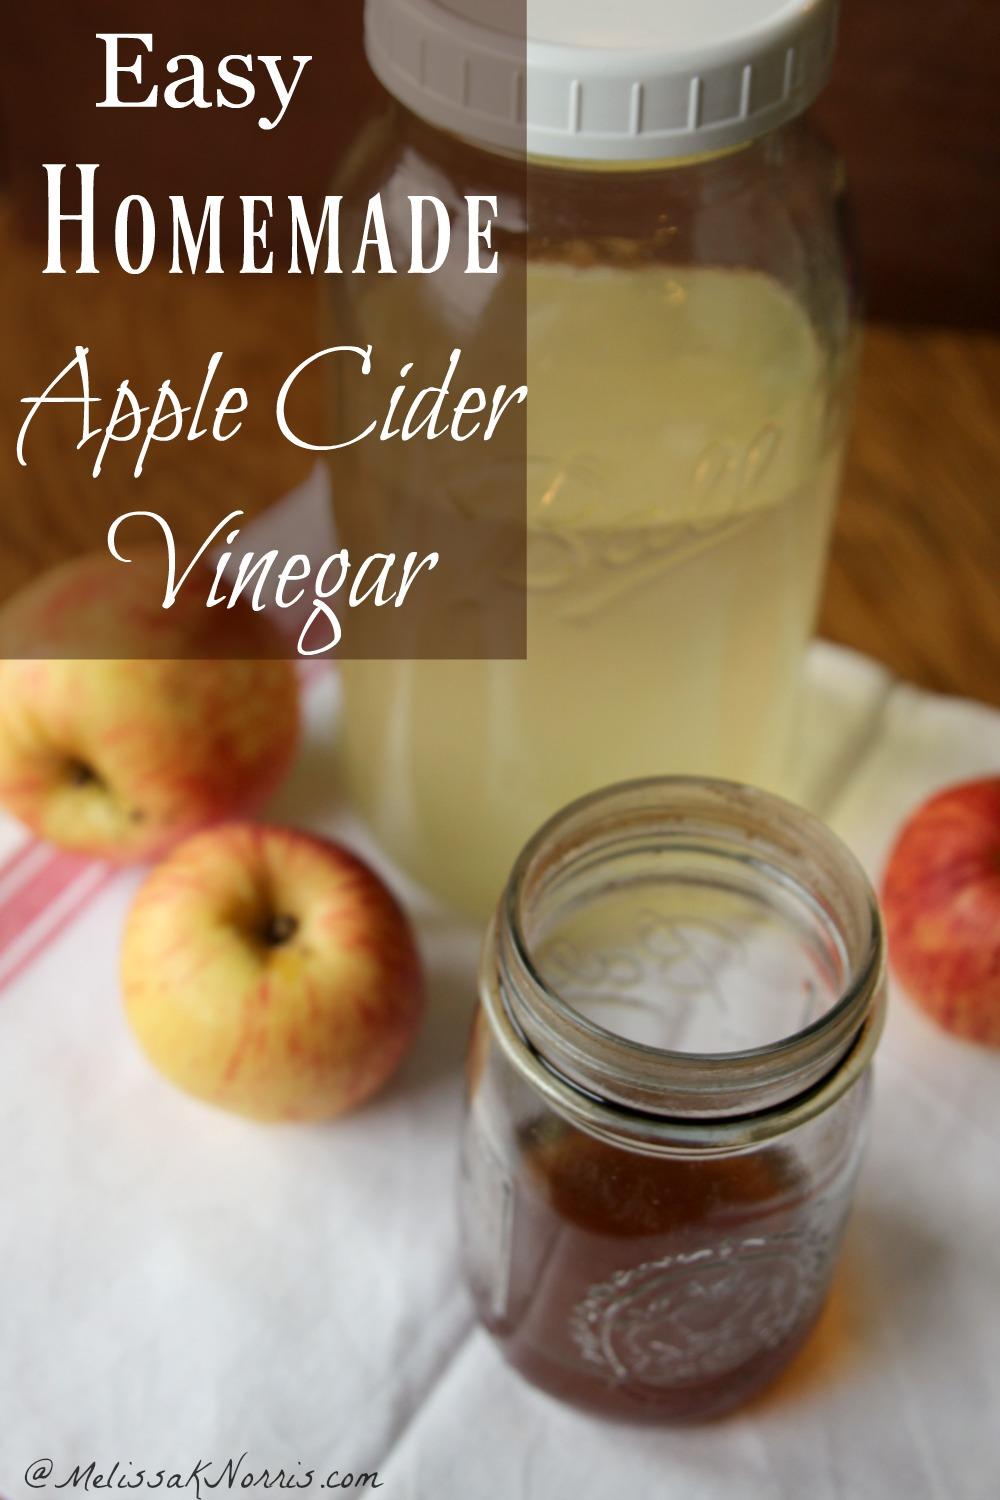 """Image of a quart Mason jar filled with apple juice in the background, and a pint Mason jar filled with apple cider vinegar in forefront. Two apples are sitting to the left, and one apple is sitting to the right. Text overlay says """"Easy Homemade Apple Cider Vinegar""""."""